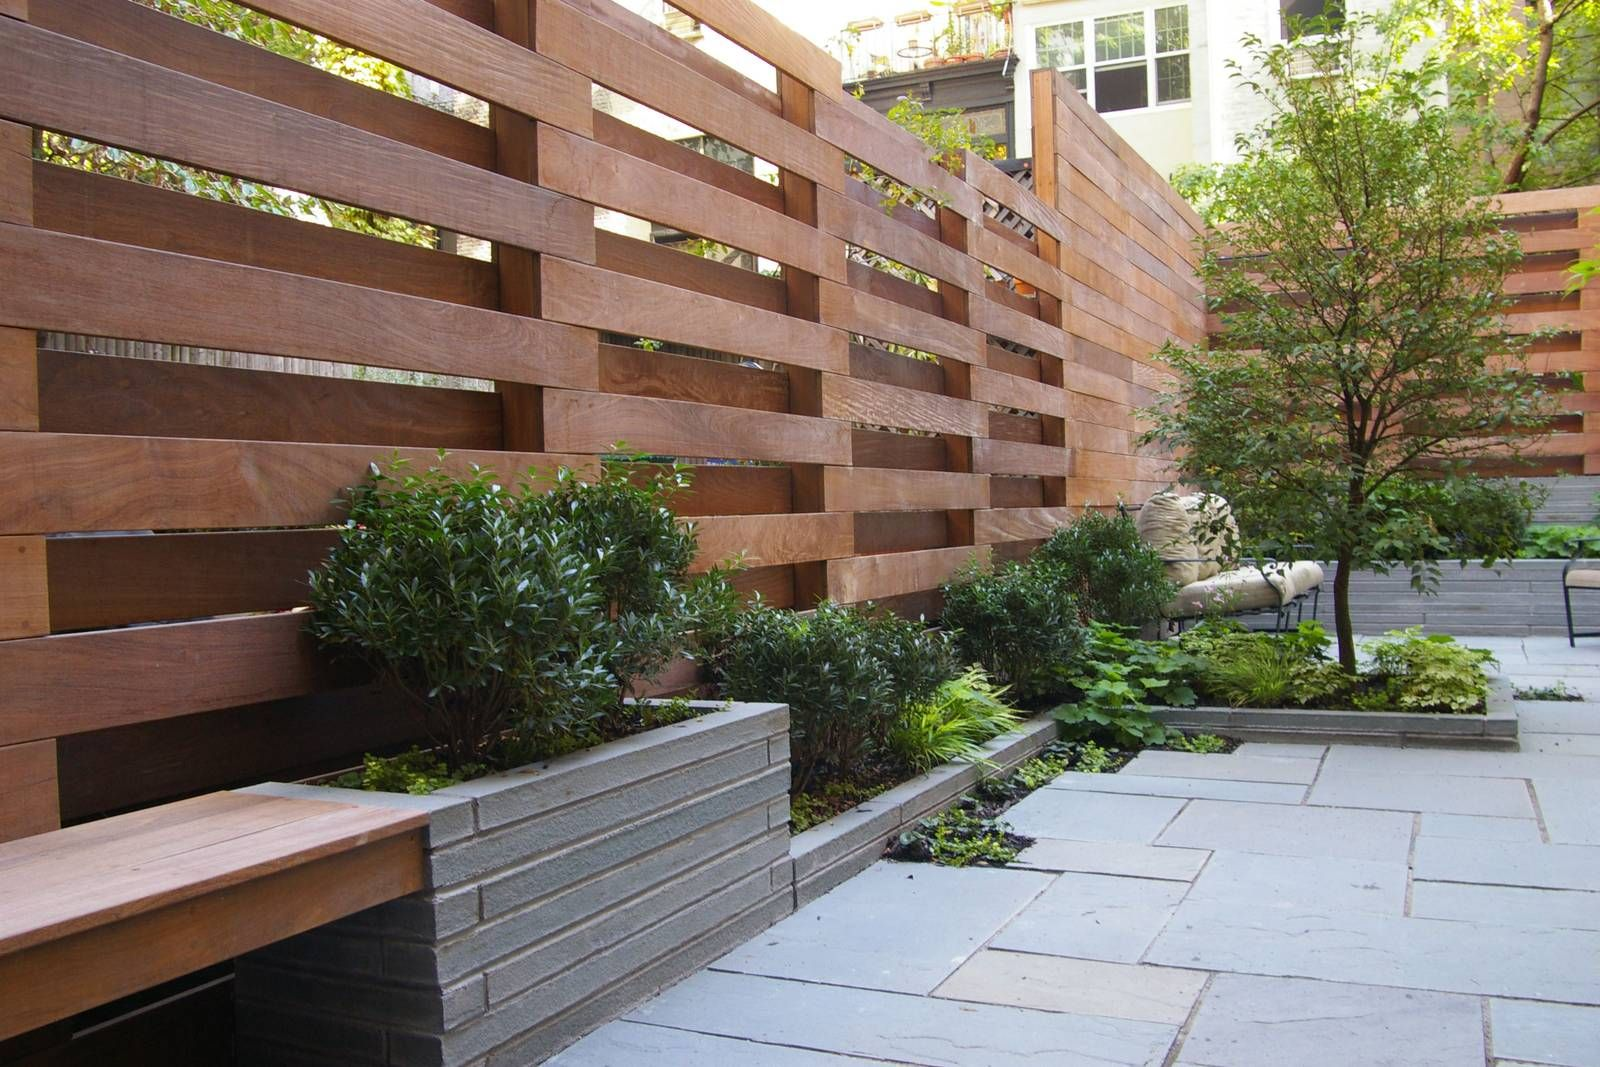 Creative Idea Stunning Home With High Brown Modern Wood Fence Near Small Brown Wood Bench Seat Also Backyard Fences Modern Garden Design Privacy Fence Designs